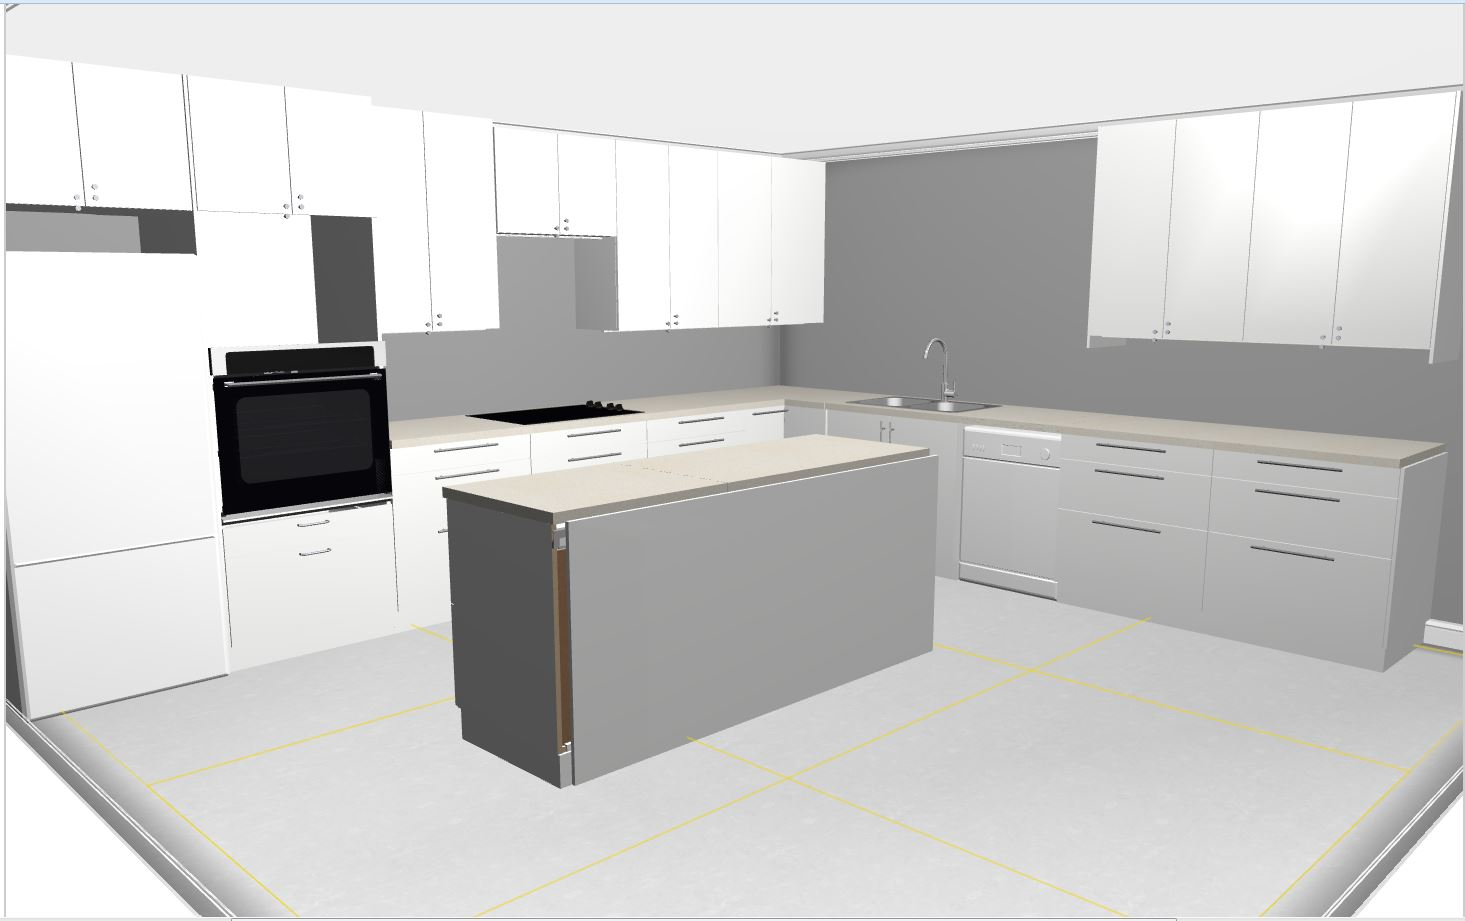 Ikea Schlafzimmer 3d Planer How Is Ikd 39s Ikea Kitchen Design Better Than The Home Planner